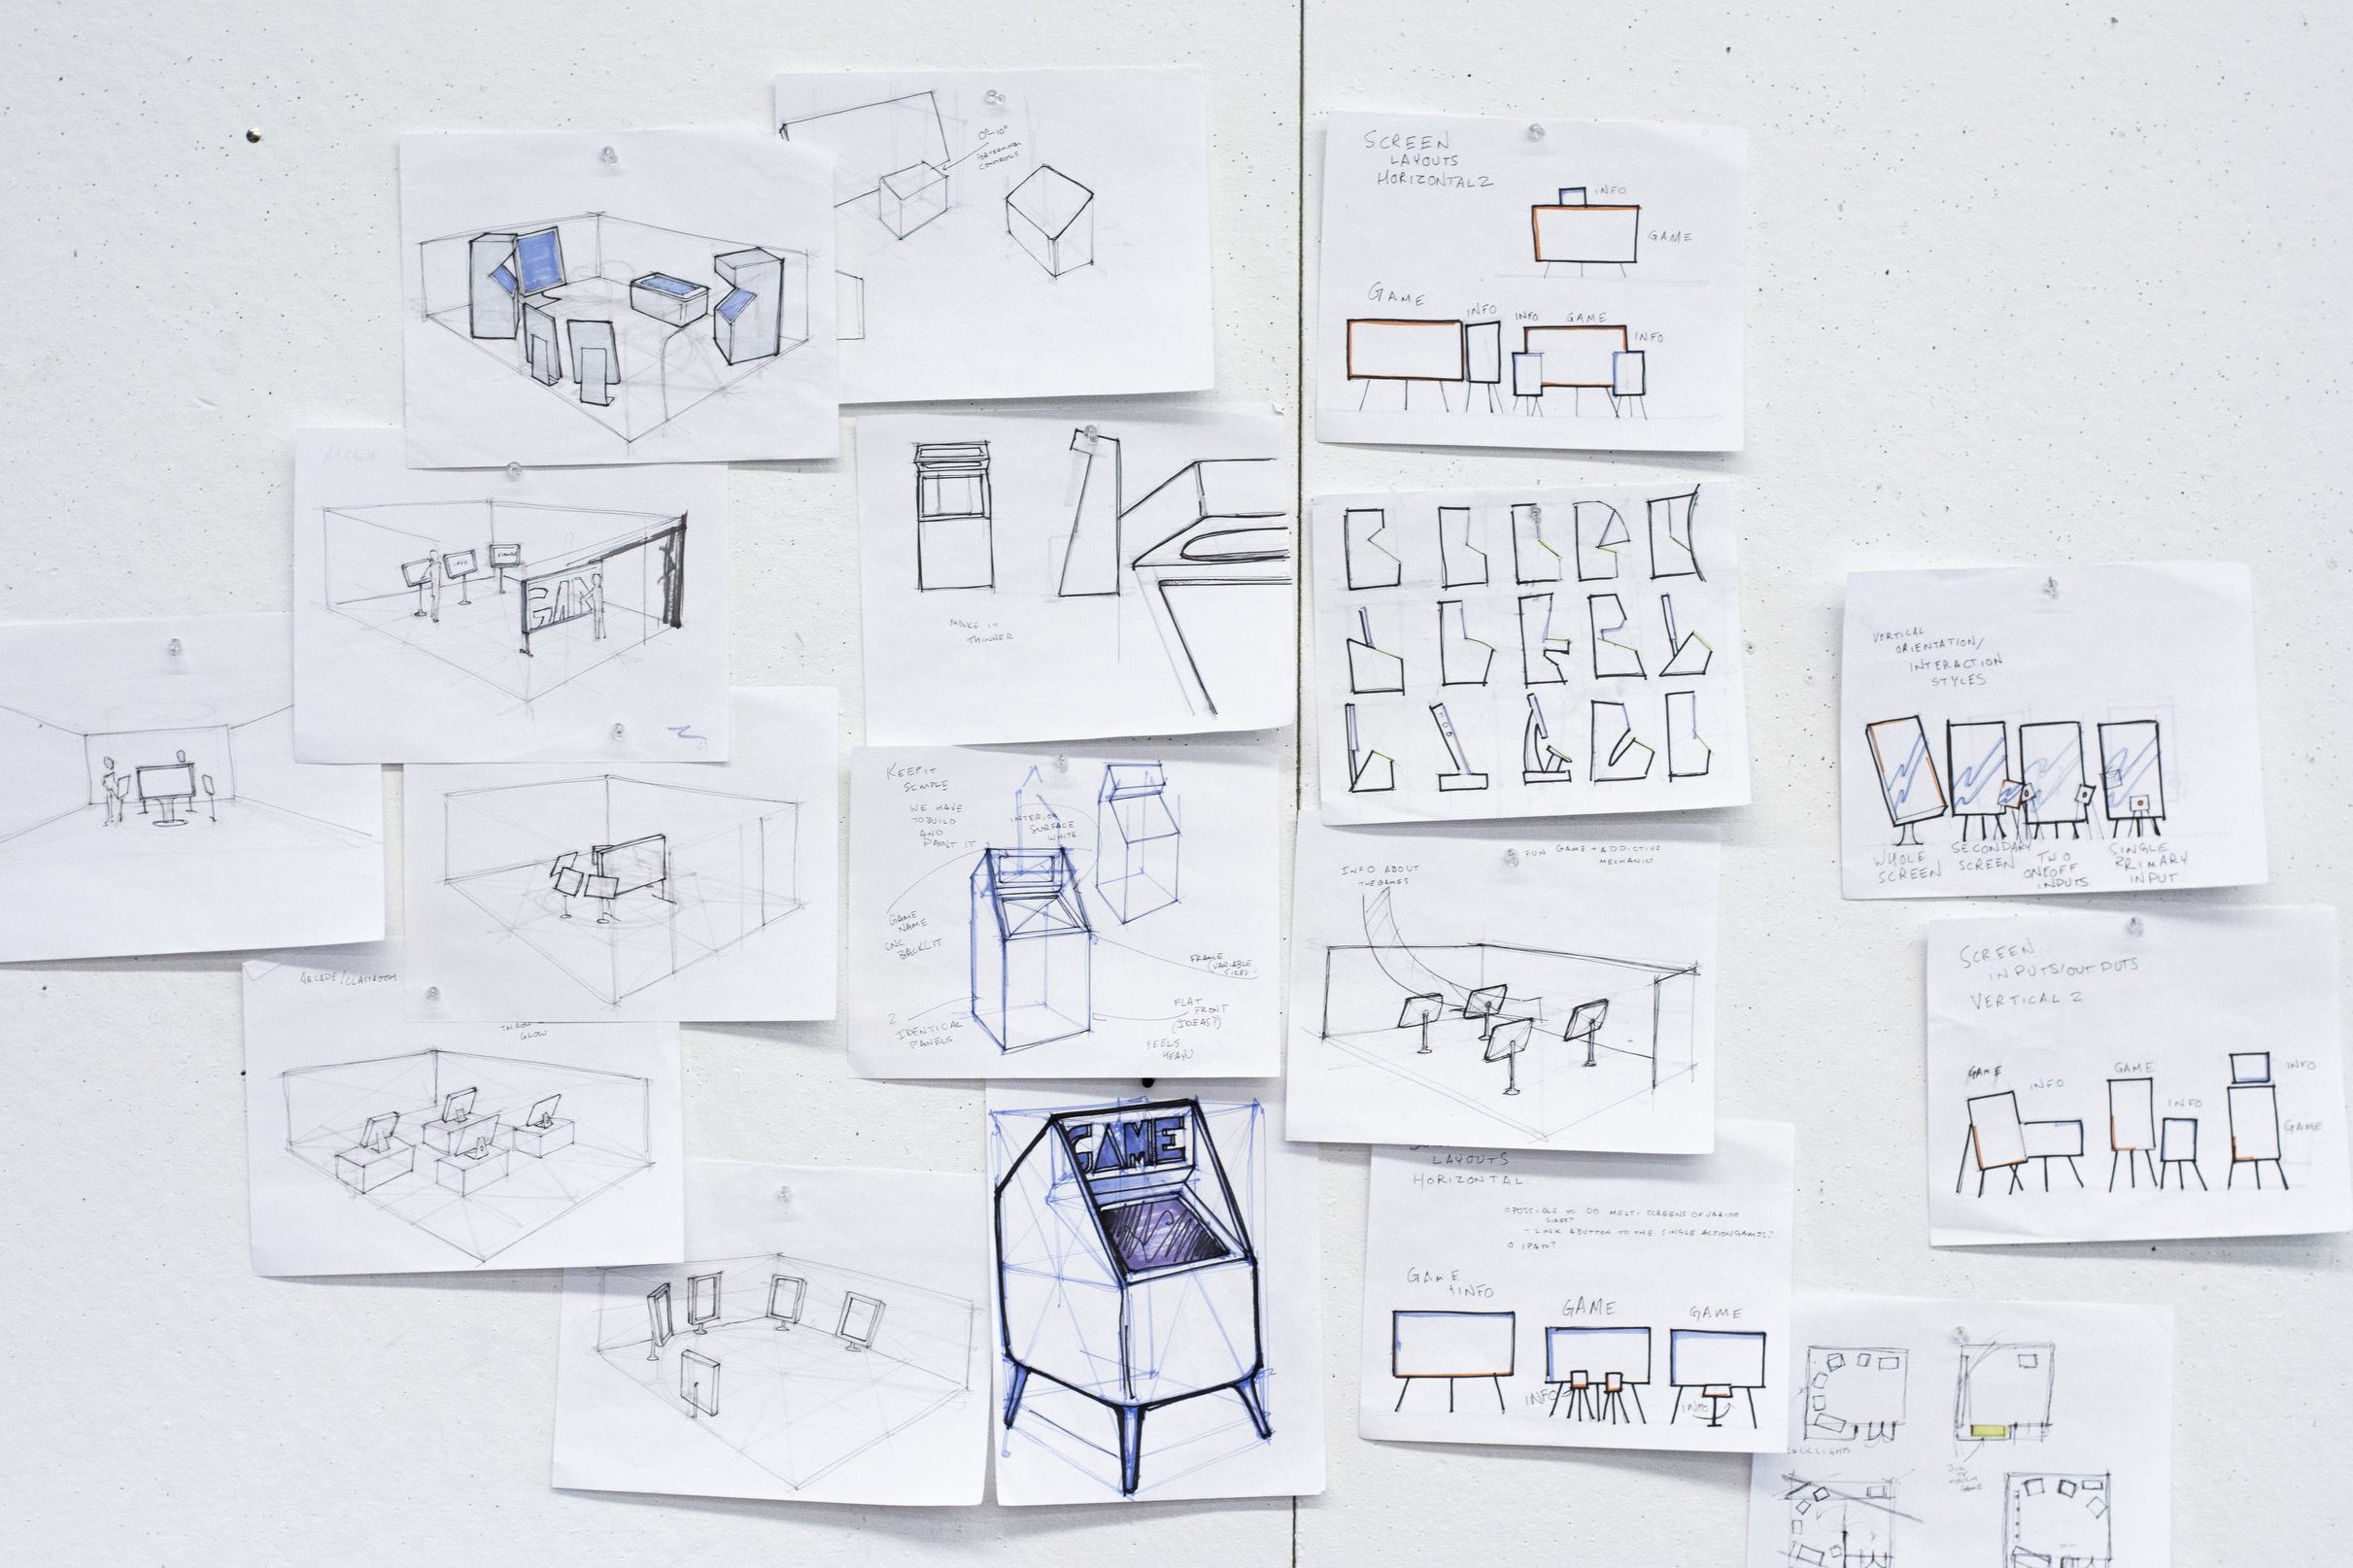 Ideation and Development - Early on, the team decided to create an arcade to display these games, but we didn't quite know what the room would look like, or what the arcade cabinets would be. So I got to sketching.